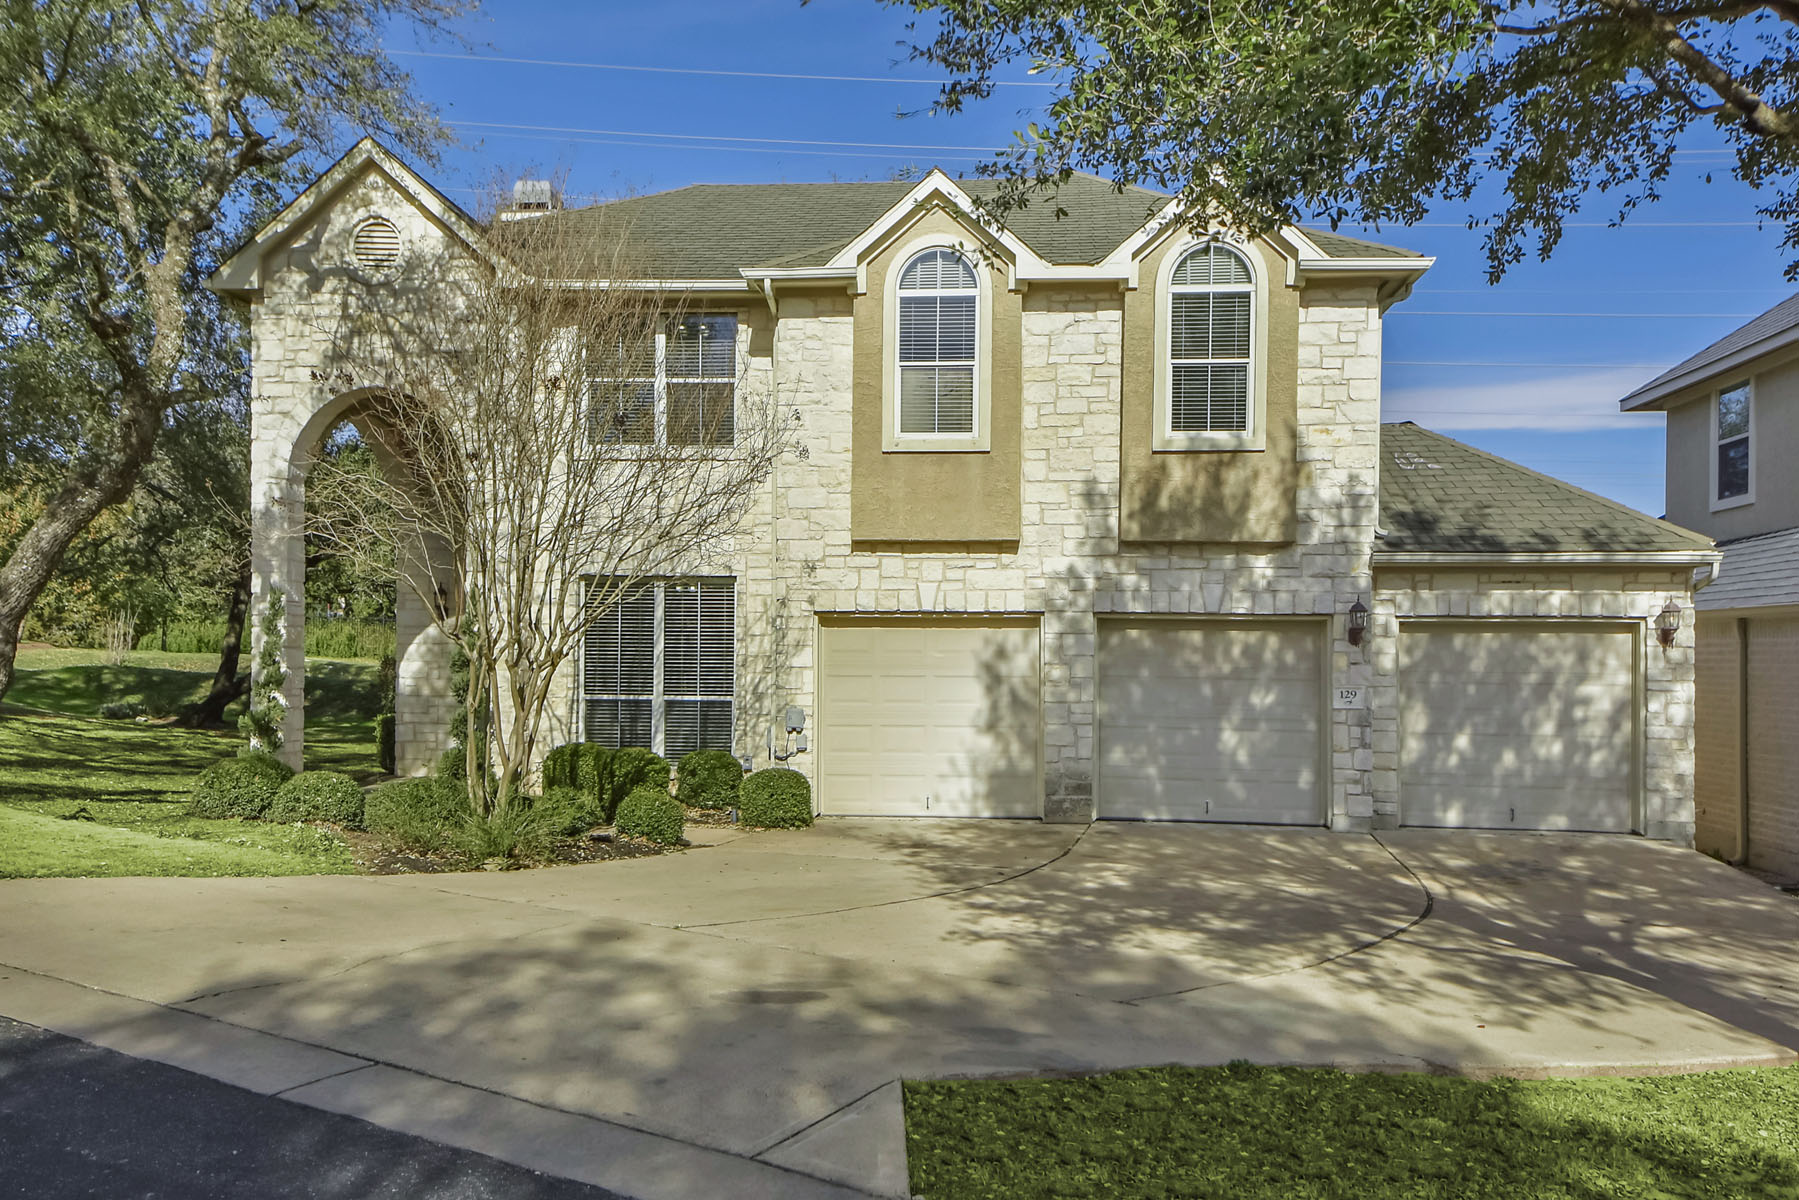 Condominium for Sale at Secure and Private in Gated Community 129 Double Eagle Dr 129 Austin, Texas 78738 United States